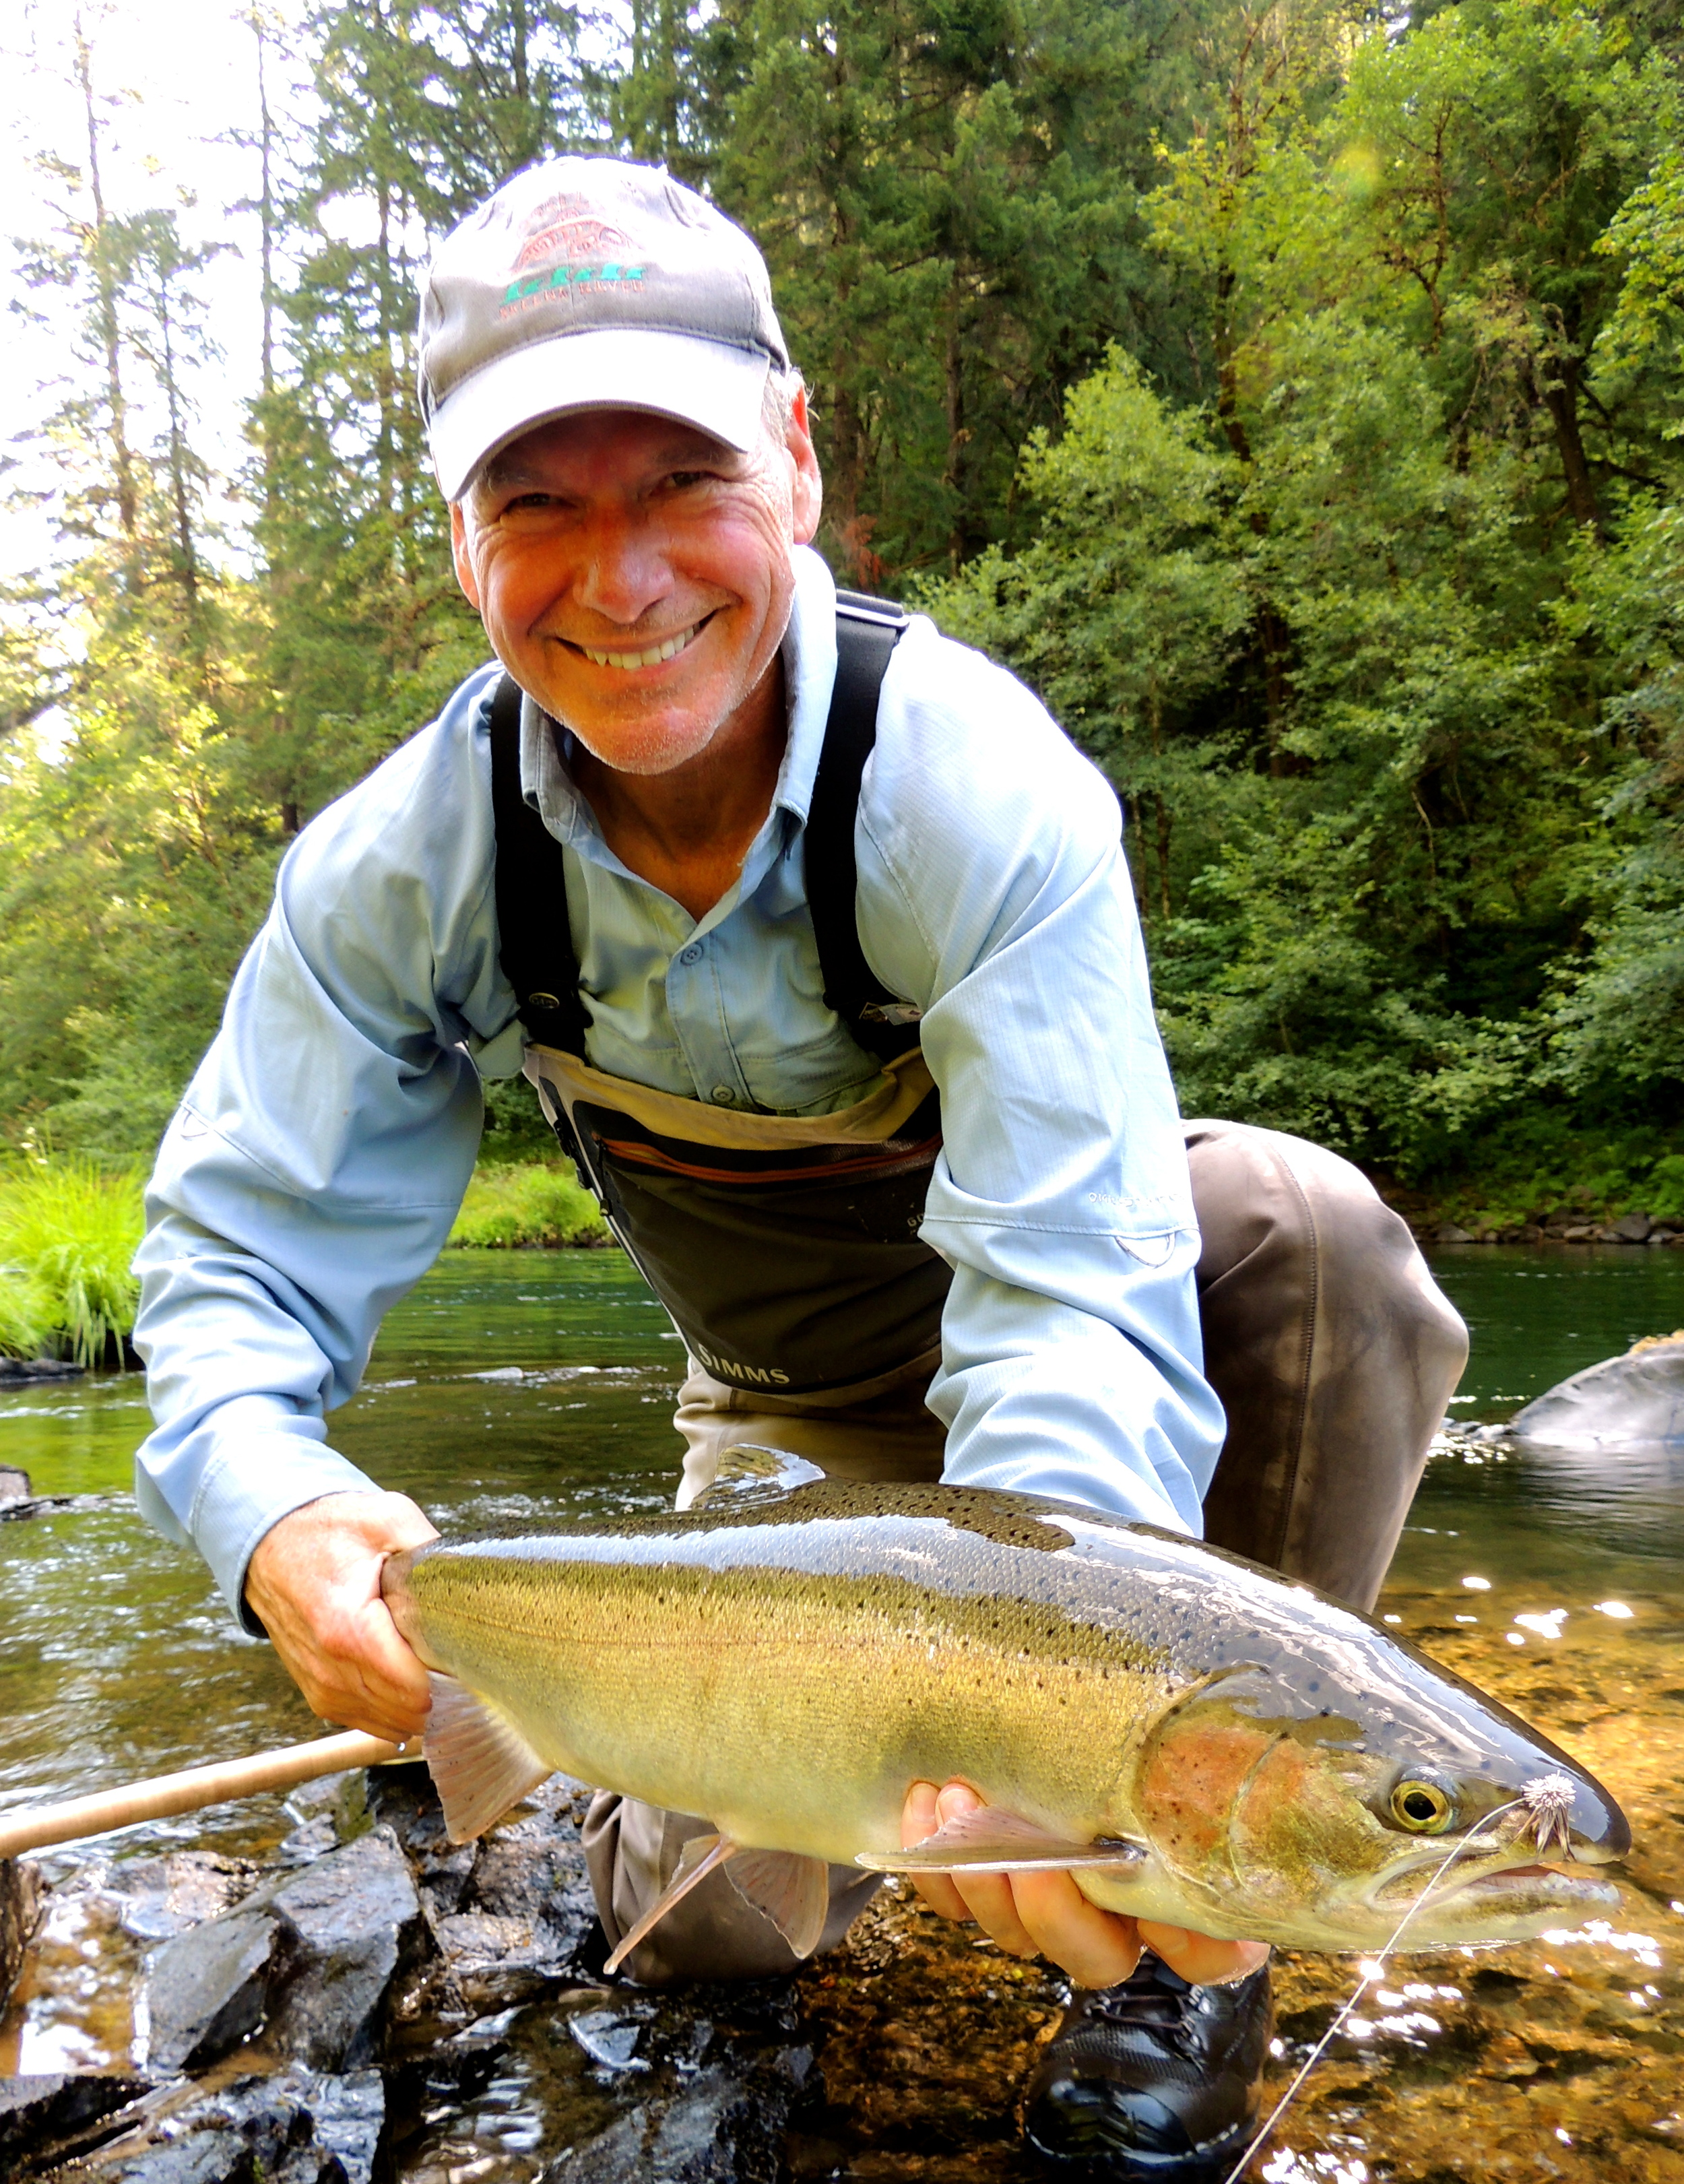 Bruce Moore with a dandy that cleared the water for the dry.